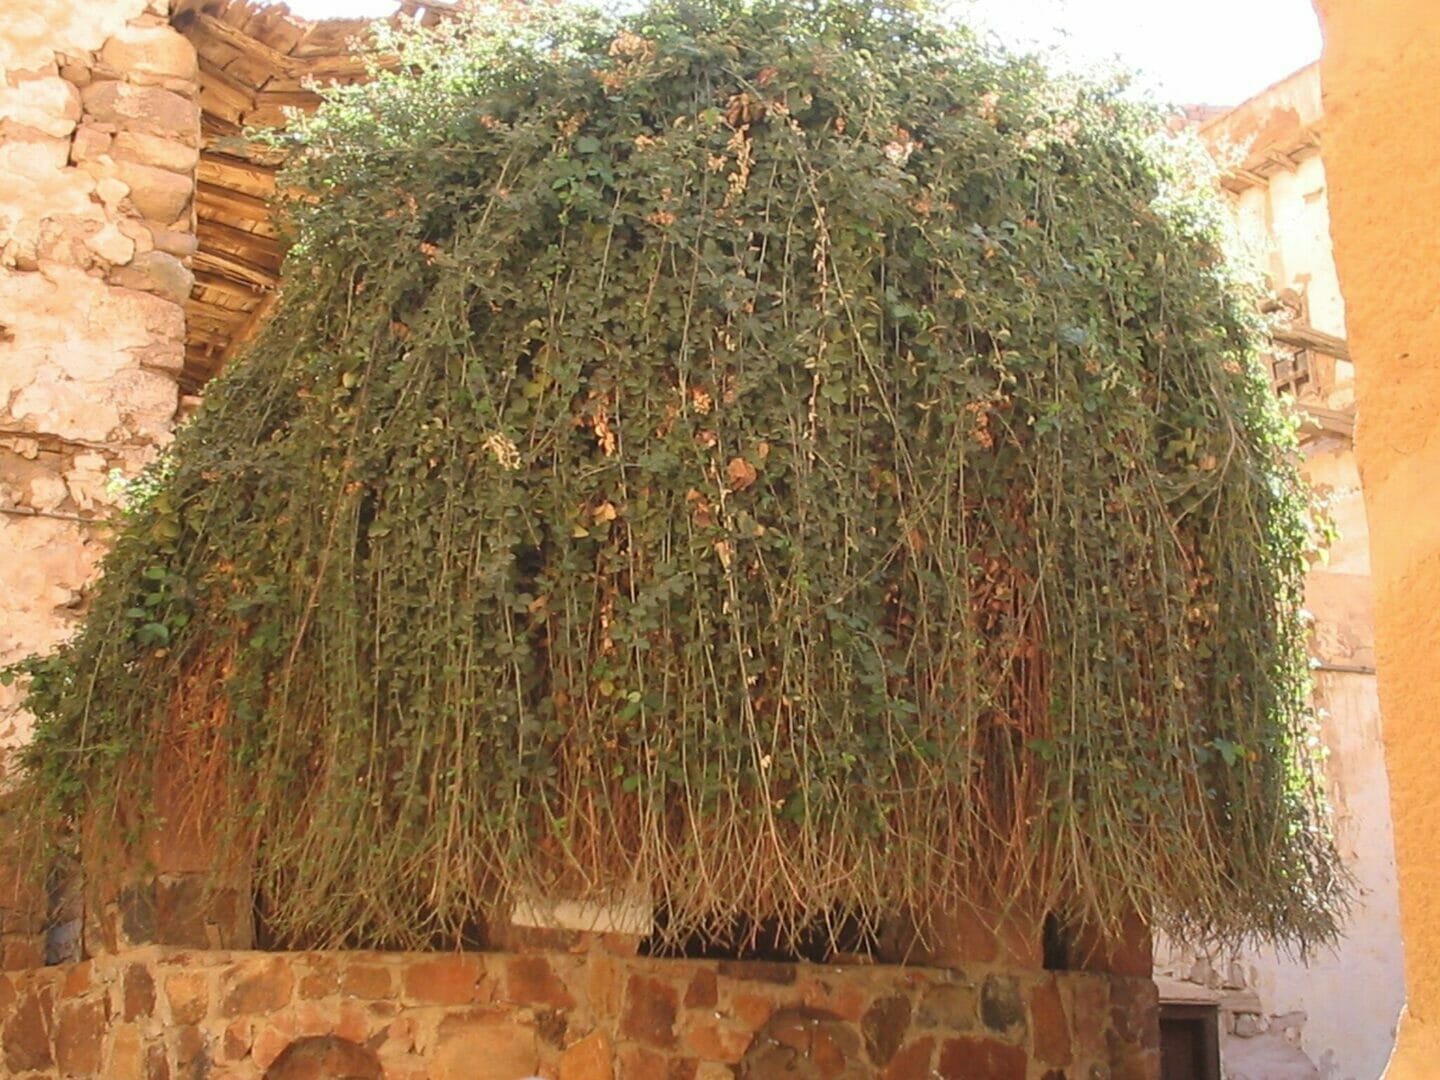 The Burning Bush of Moses in Egypt